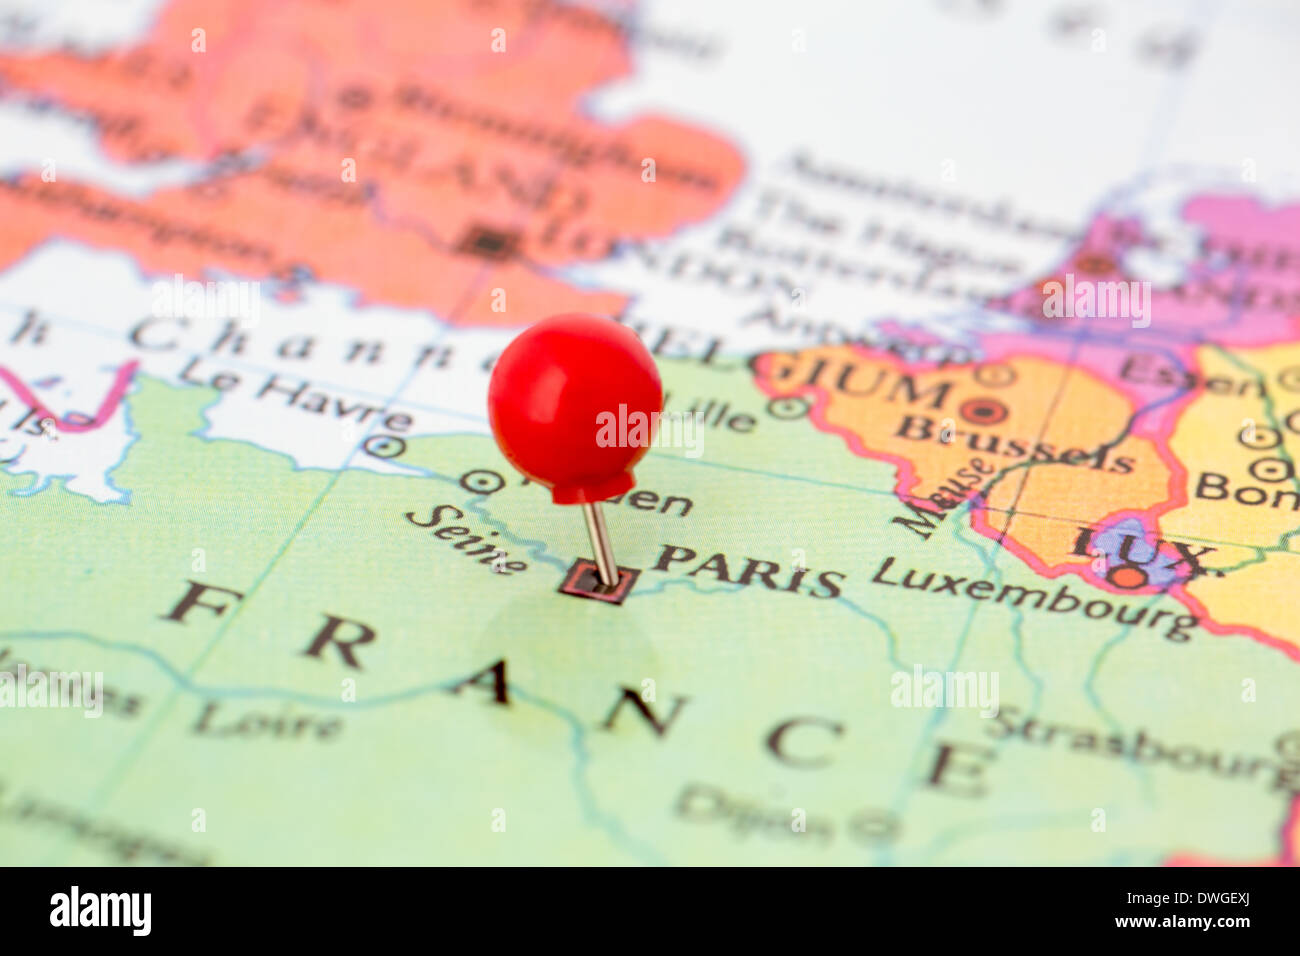 Map City Paris Map Pin Stock Photos Map City Paris Map Pin Stock